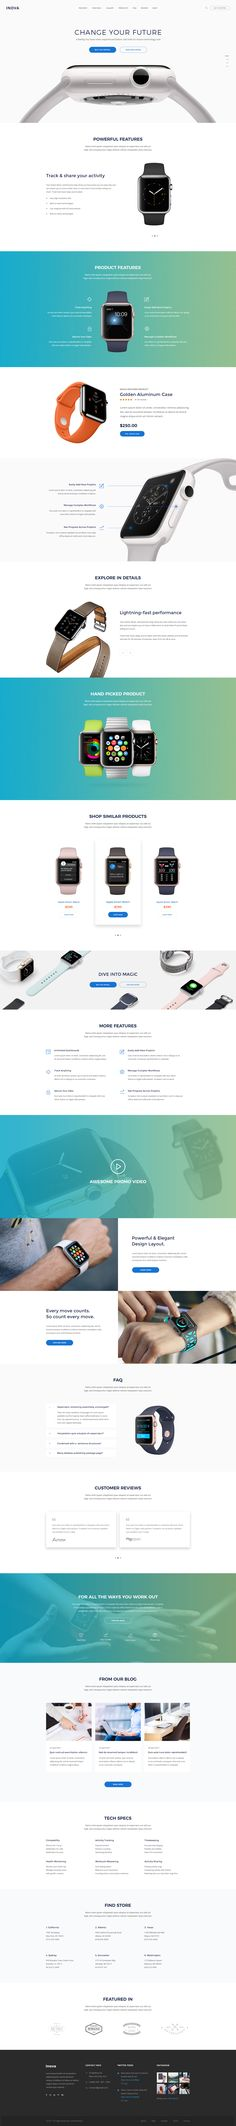 Gadgets landing page mobile marketing, mobile marke. - Gadgets landing page mobile marketing, mobile marketing illustration, m - App Design Inspiration, Infographic Design Inspiration, Mood Board Inspiration, Outfits Inspiration, Landing Page Inspiration, Flat Web Design, Web Design Trends, Design Websites, Blond Amsterdam